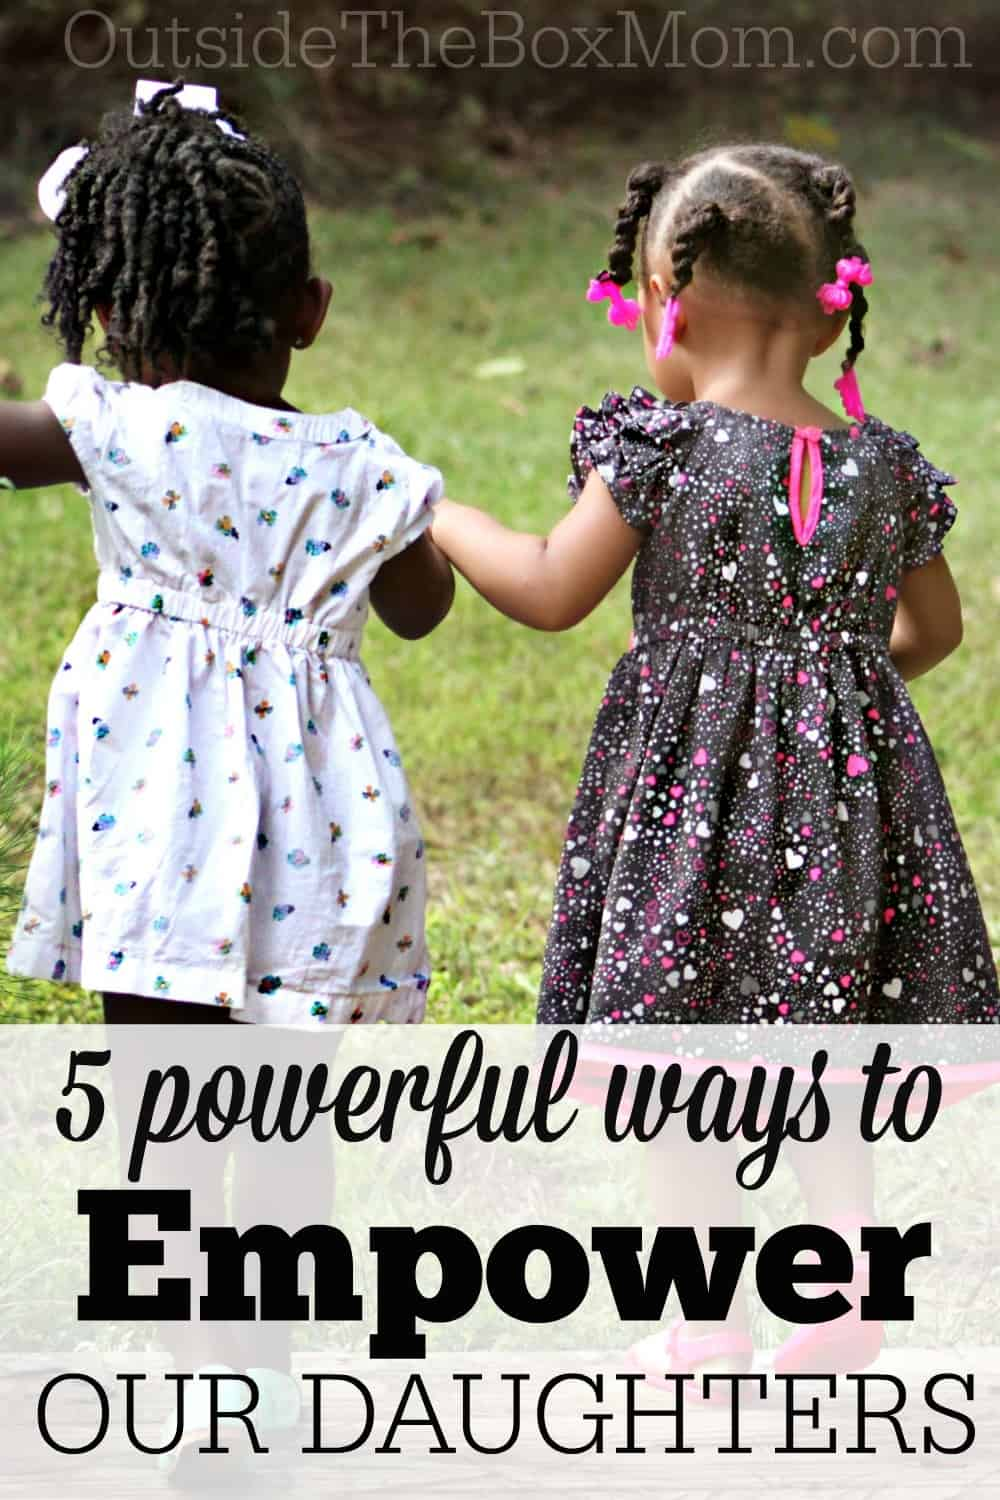 Daughters become not only the wives and mothers of the world, but also the teachers, CEOs, and presidents. Learn about five powerful ways that you can empower your daughter today.